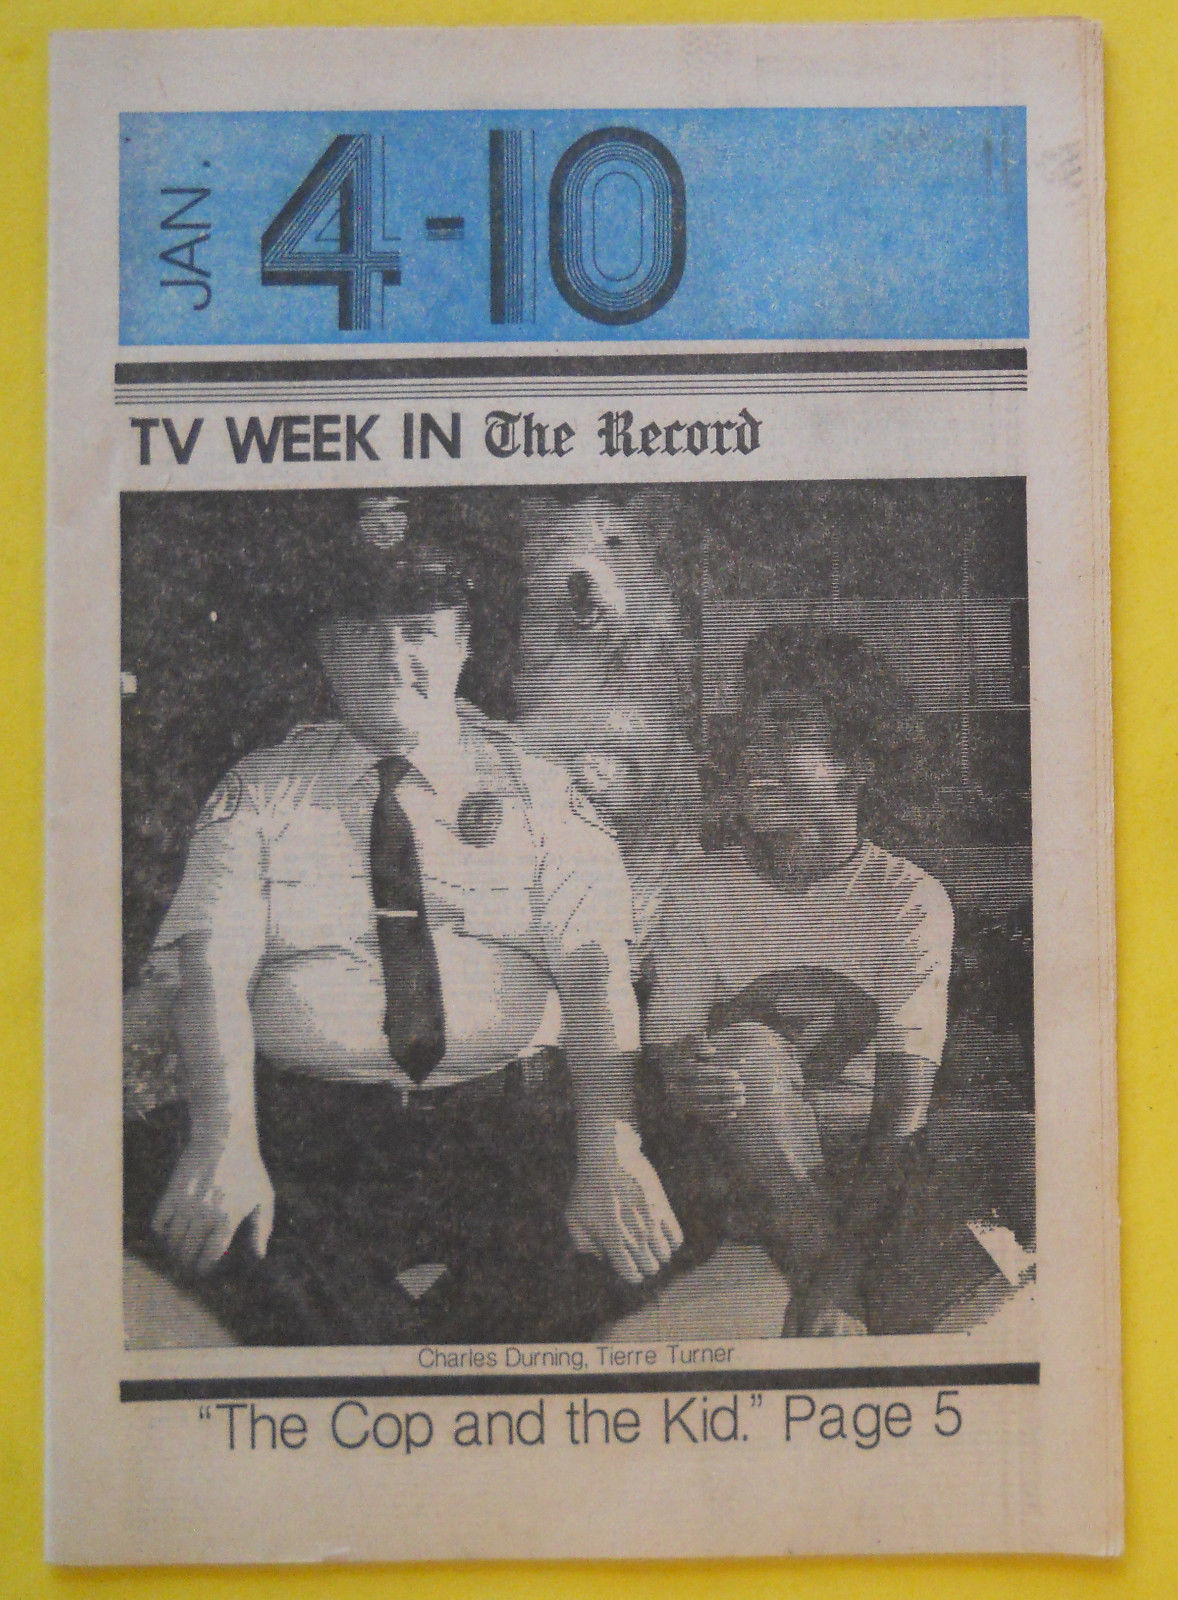 Charles_Durning_Tierre_Turner_THE_COP_AND_THE_KID_Bergen_NJ_TV_guide_Jan_4_1976